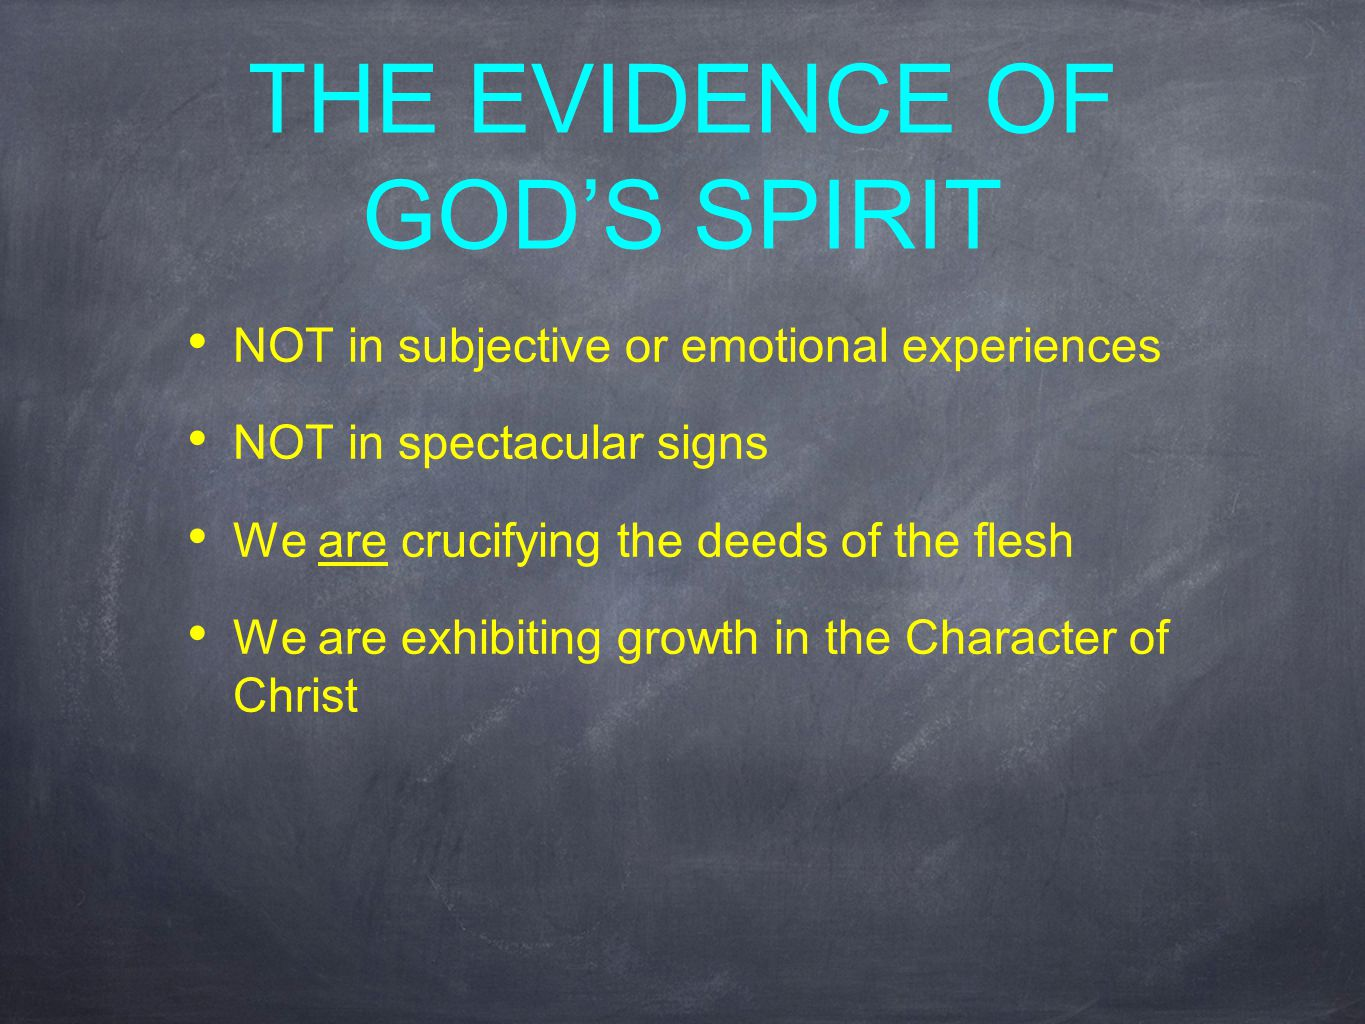 THE EVIDENCE OF GOD'S SPIRIT NOT in subjective or emotional experiences NOT in spectacular signs We are crucifying the deeds of the flesh We are exhibiting growth in the Character of Christ